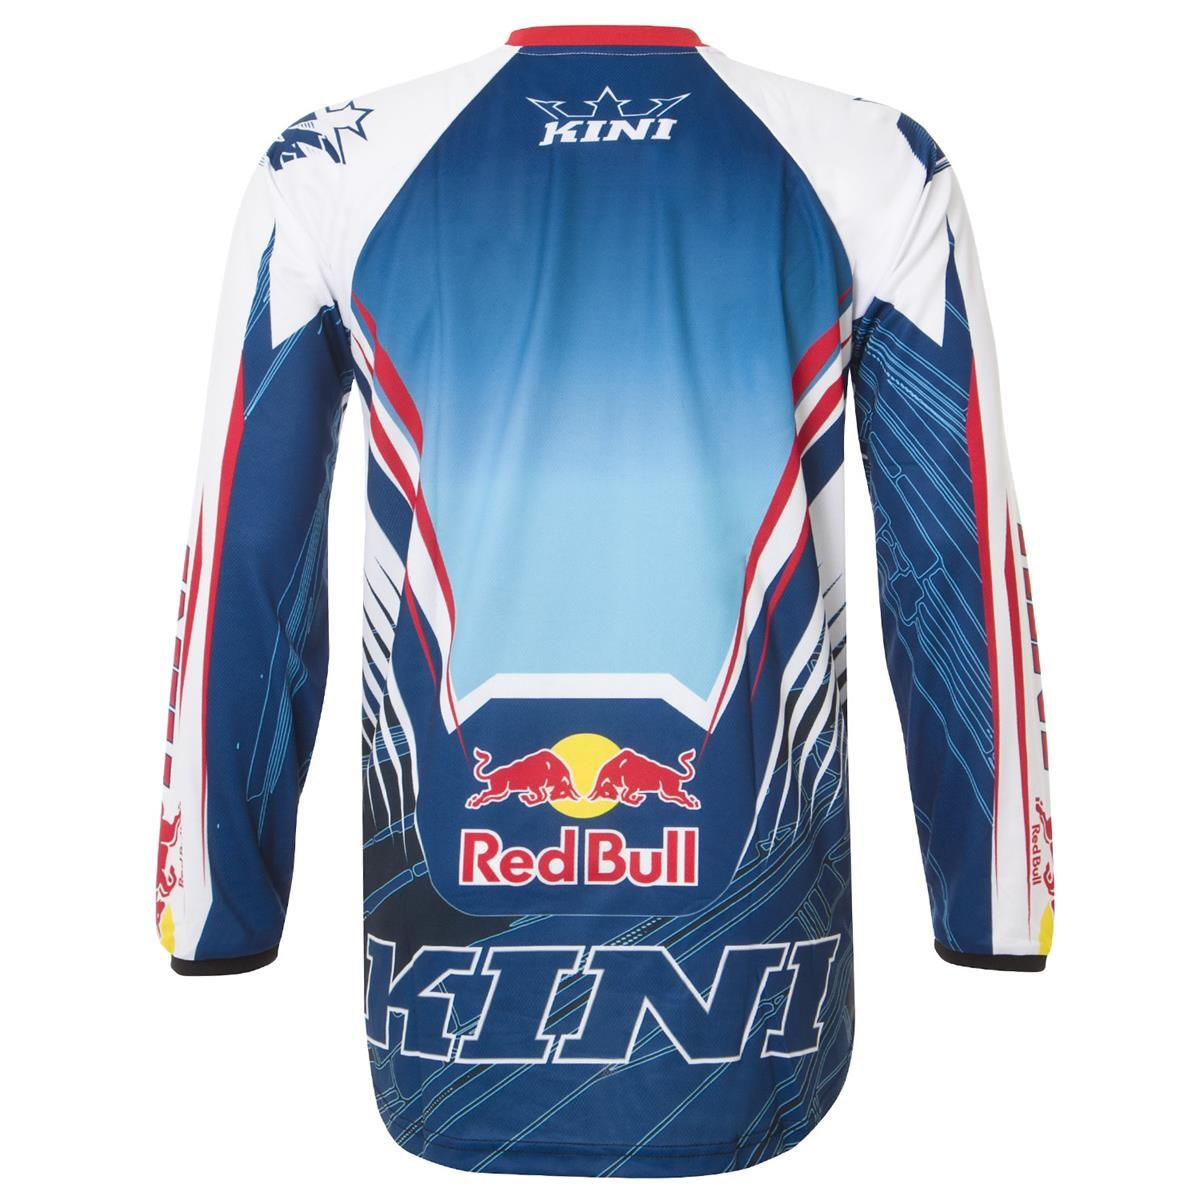 kini red bull jersey competition navy wei 2018 maciag. Black Bedroom Furniture Sets. Home Design Ideas